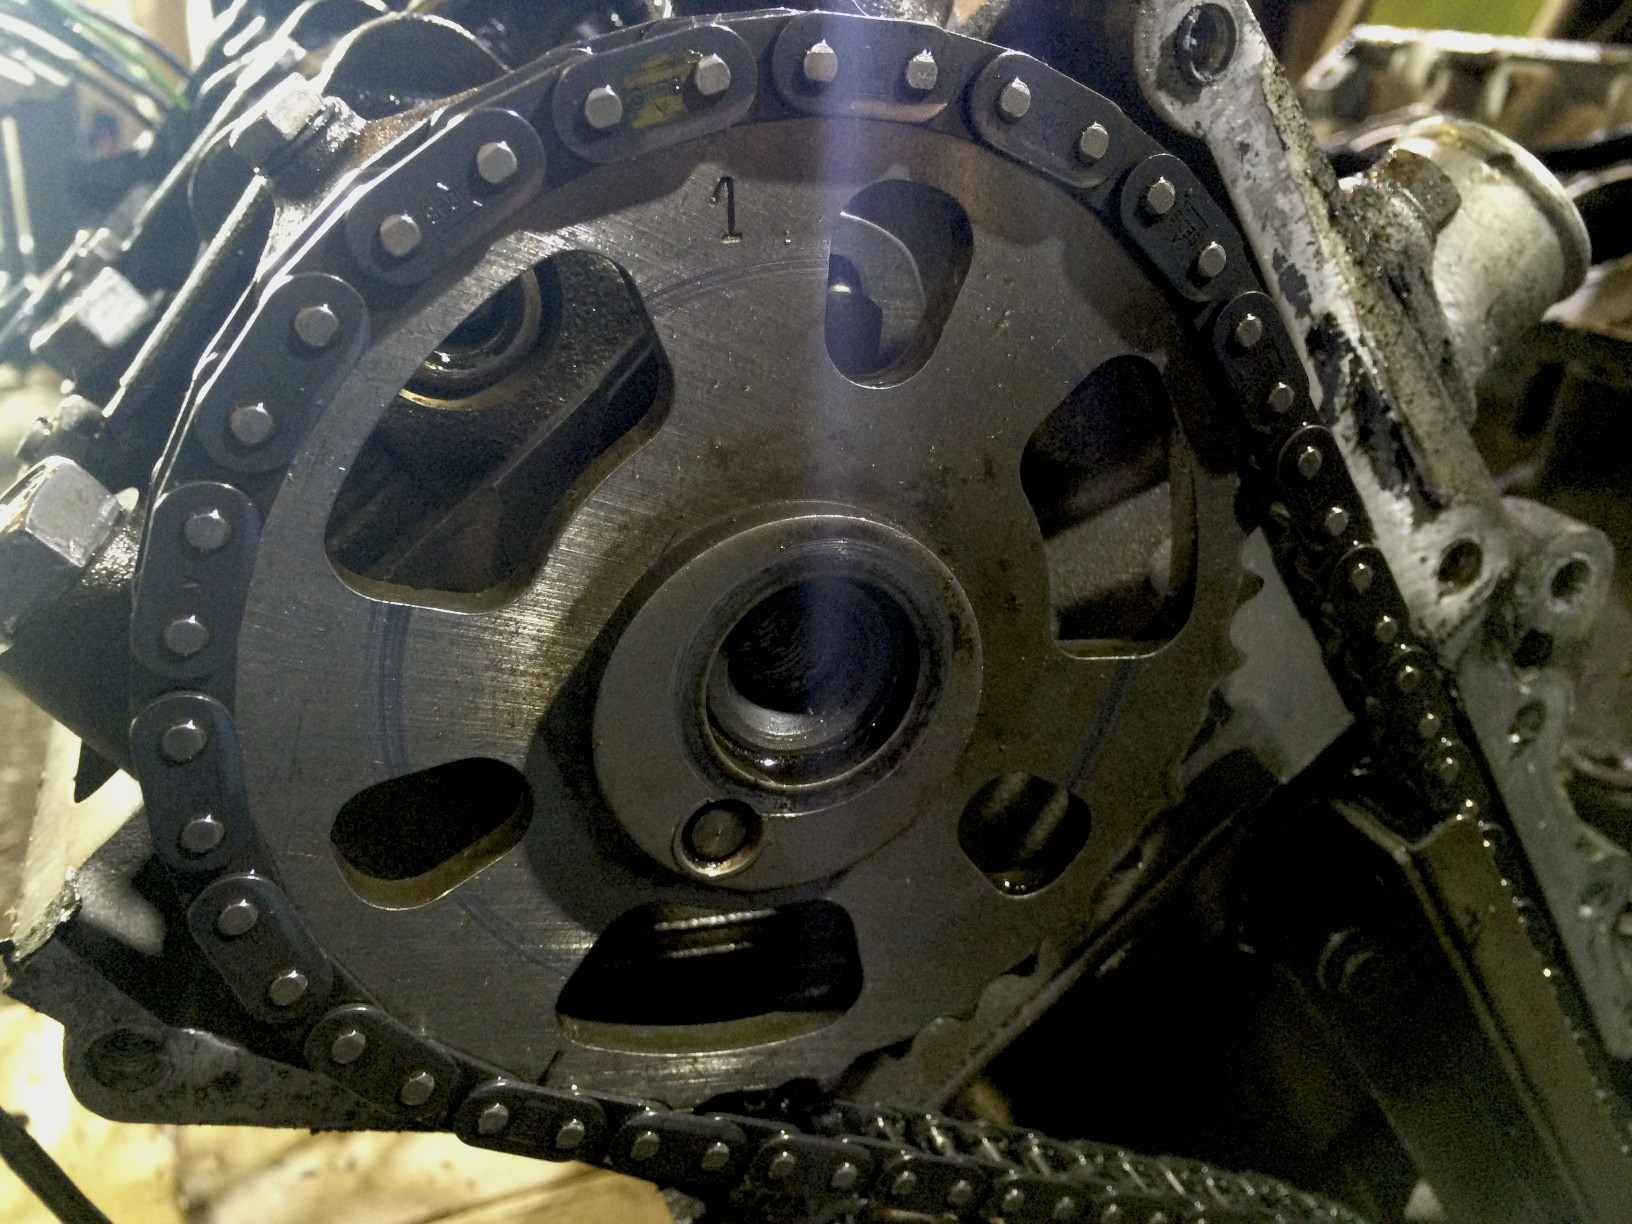 The timing chain on the sprocket, but with the hex screw removed. The '1' at the top of the sprocket lines up with the yellow mark on the timing chain when the engine is properly timed, The pin below the center hole lines up with a recess in the cams and keeps the sprocket locked with the cams' rotation.